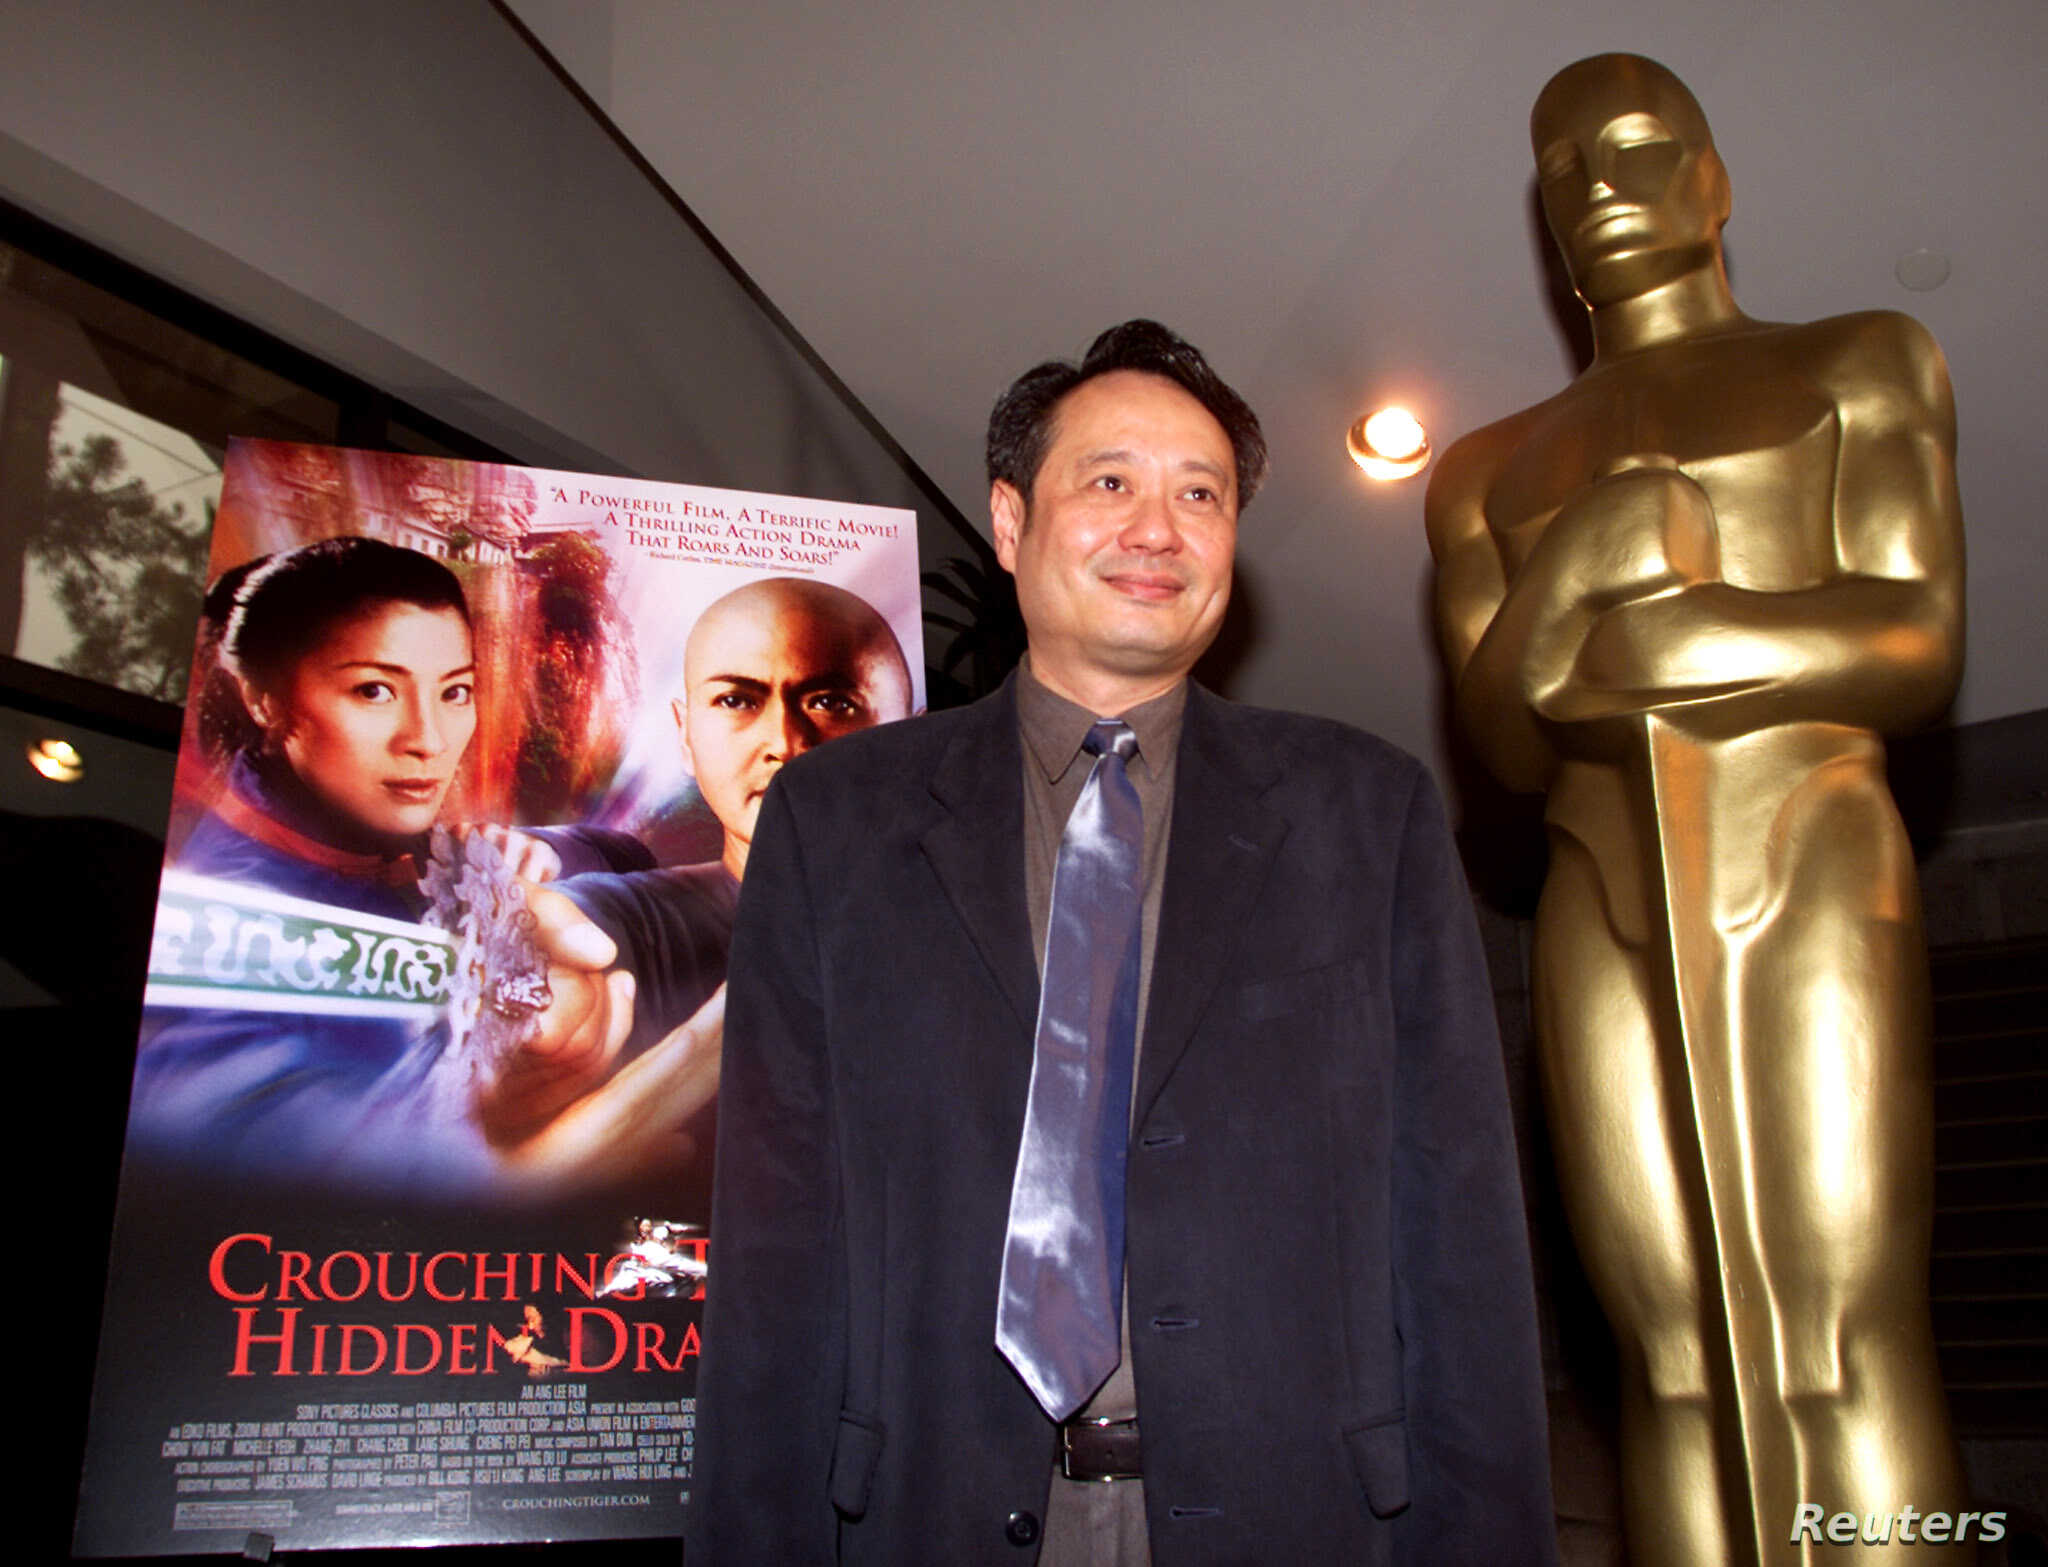 """FILE - Director Ang Lee stands next to the movie poster for his Academy Award-nominated film, """"Crouching Tiger, Hidden Dragon,"""" at the Academy of Motion Pictures of Arts and Sciences in Beverly Hills, March 23, 2001."""